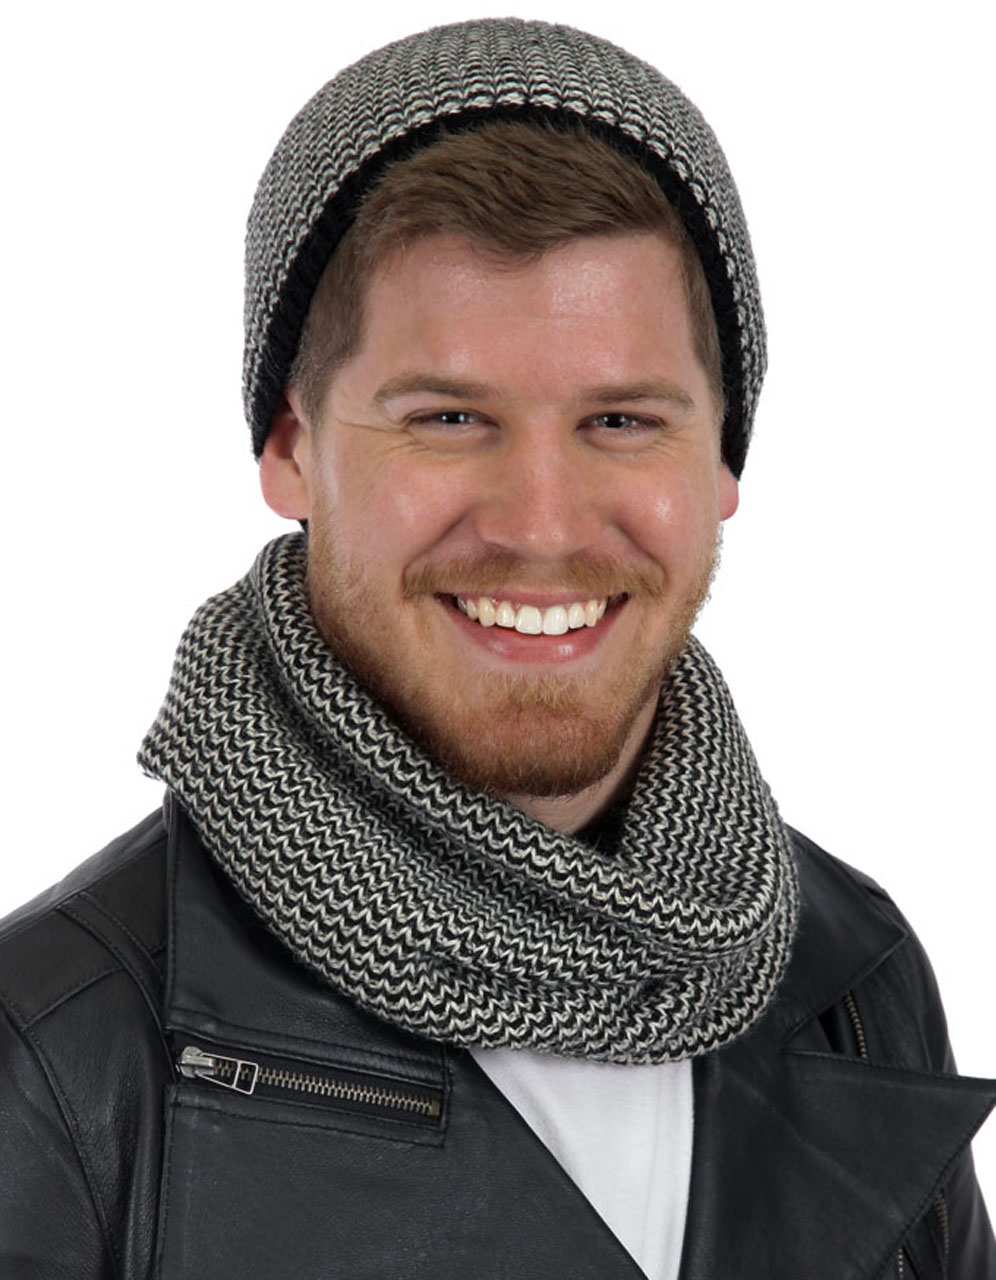 Unisex Chevron Alpaca Circle Scarf and Beanie Black / Cream - Male Model